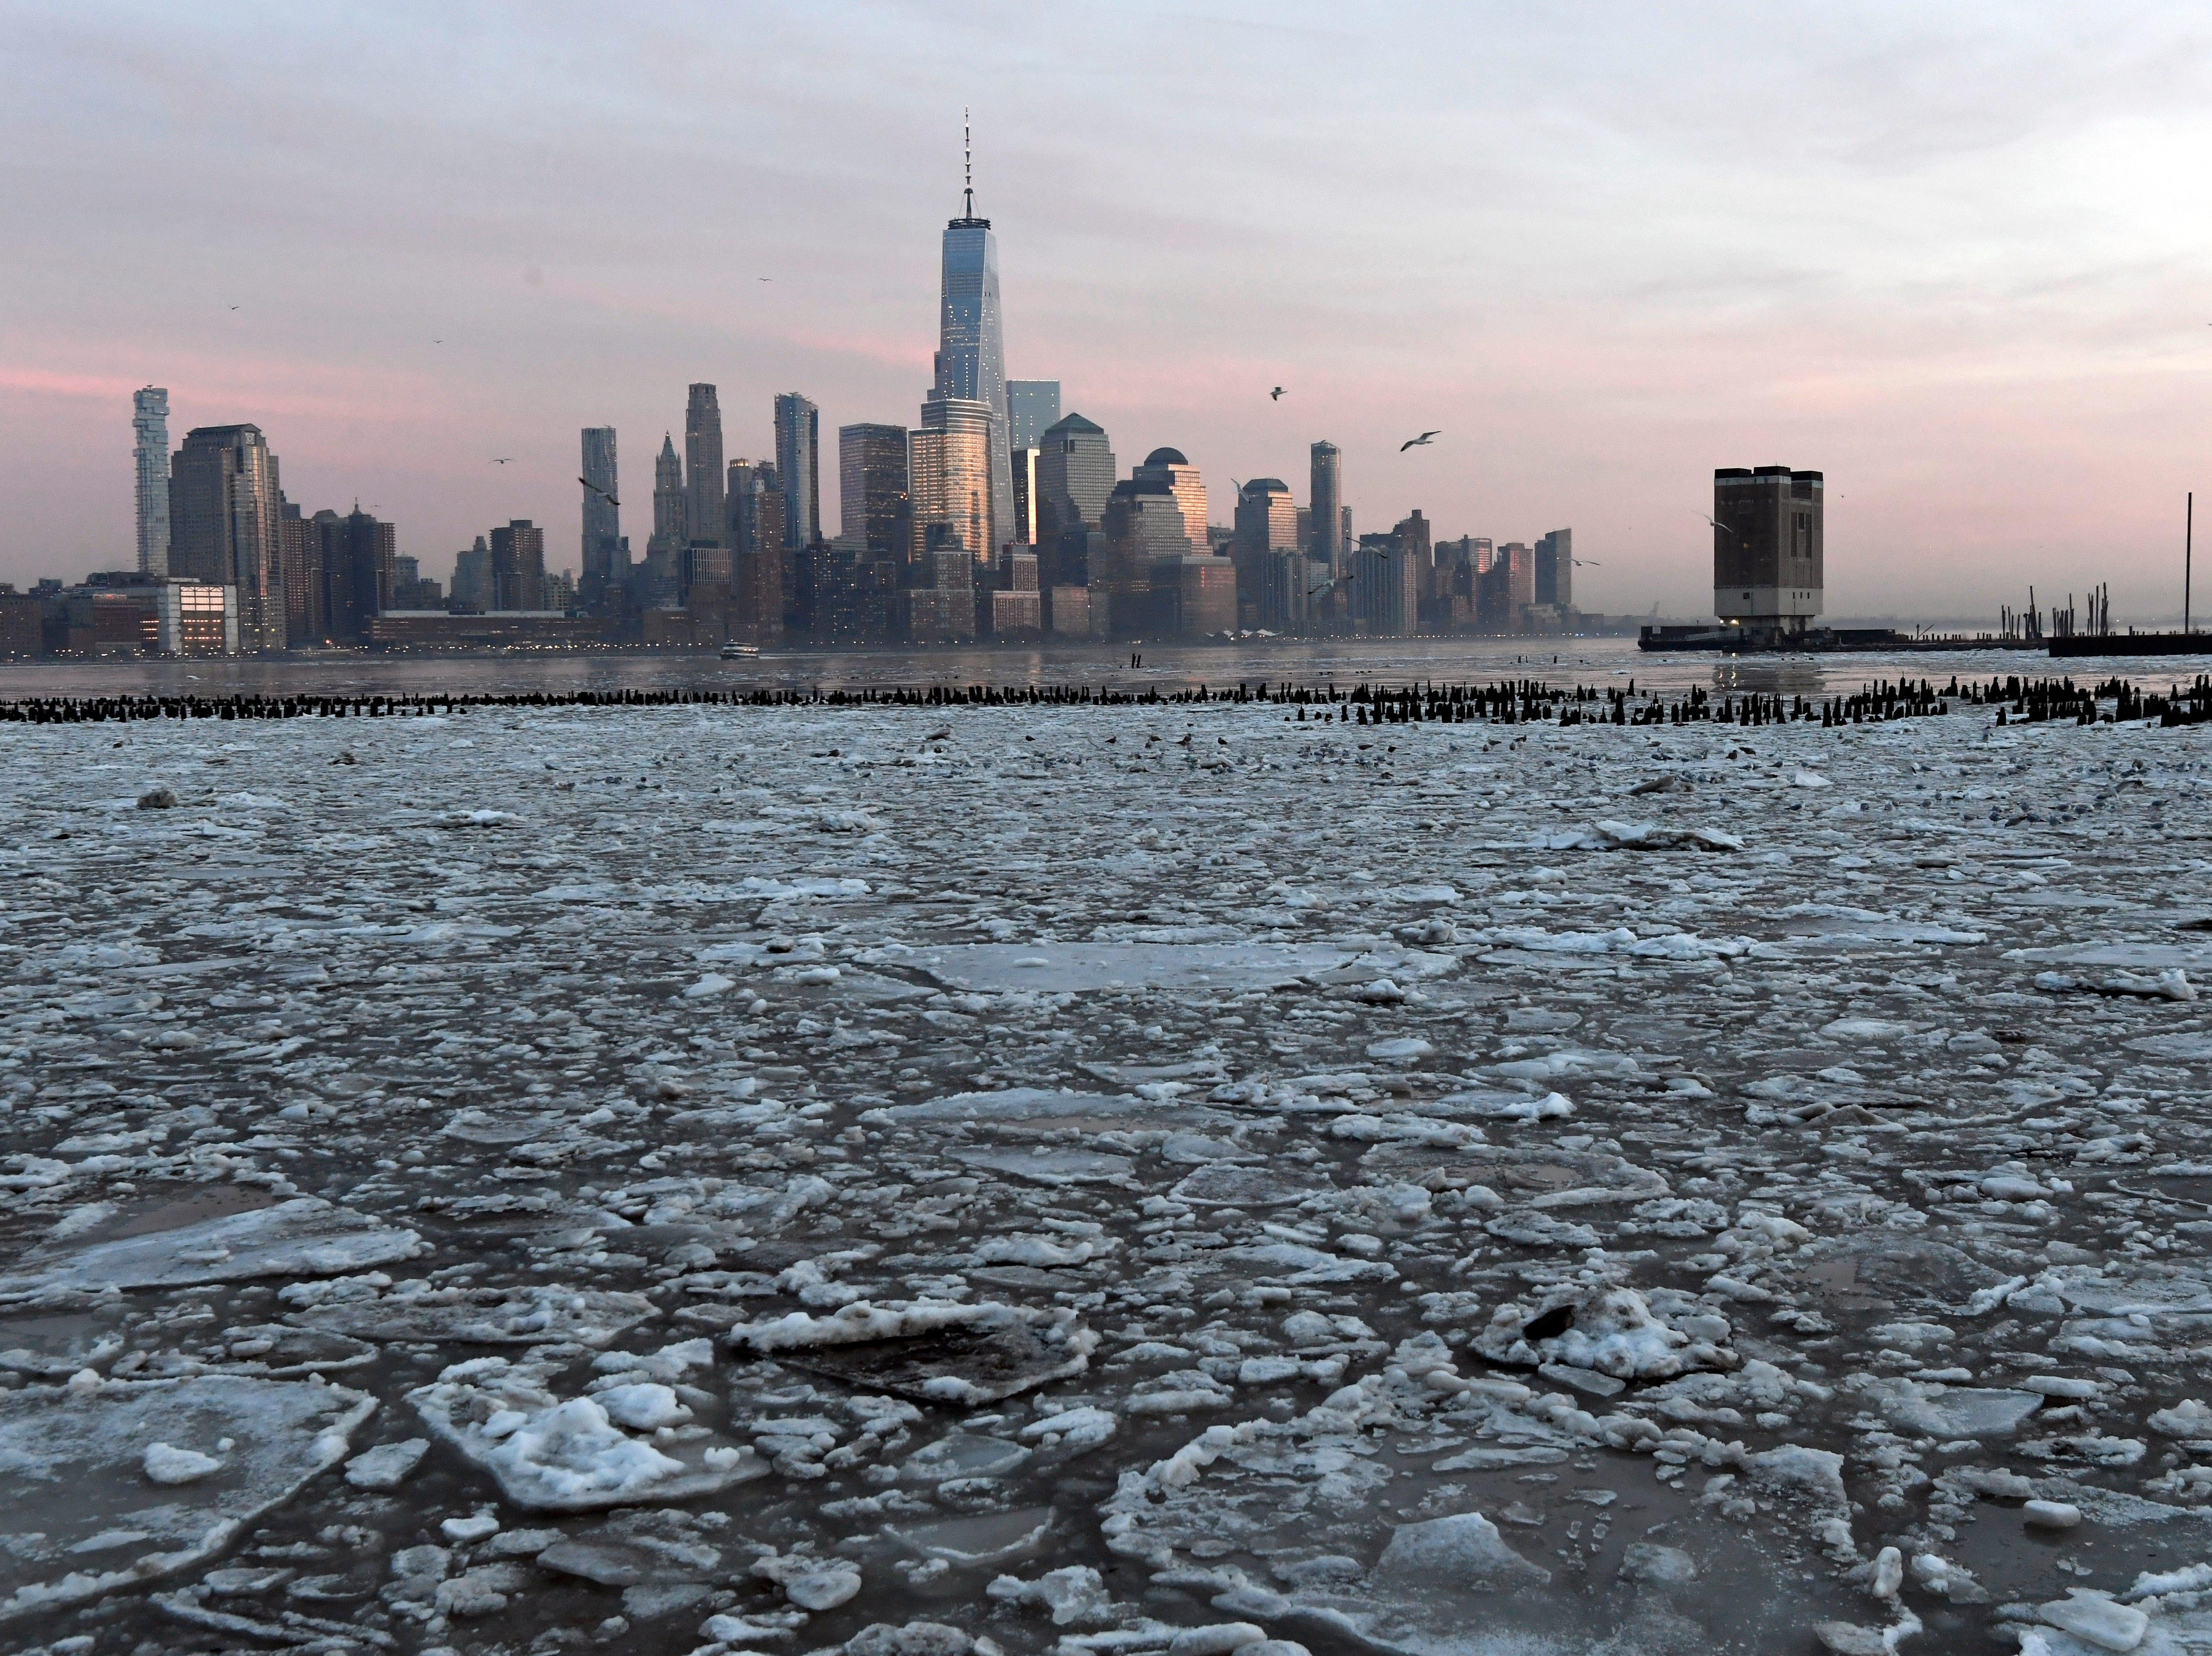 Blocks of ice float in the Hudson River along the Hoboken waterfront, facing the World Trade Center, on Thursday, January 11, 2018.